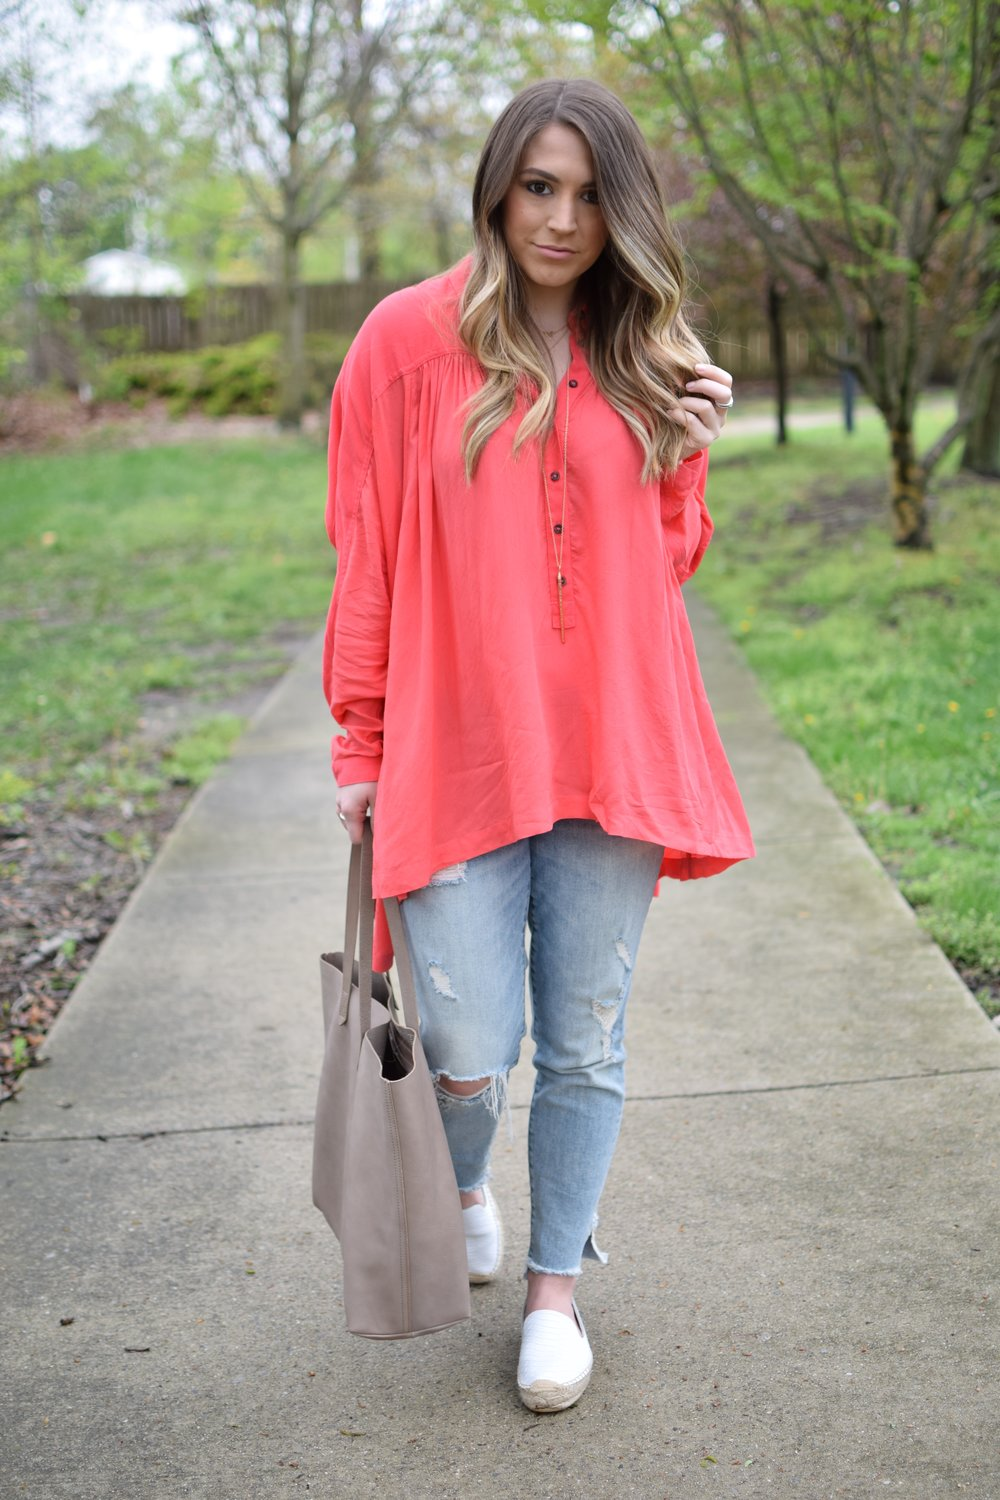 spring outfit idea / light weight top & distressed denim